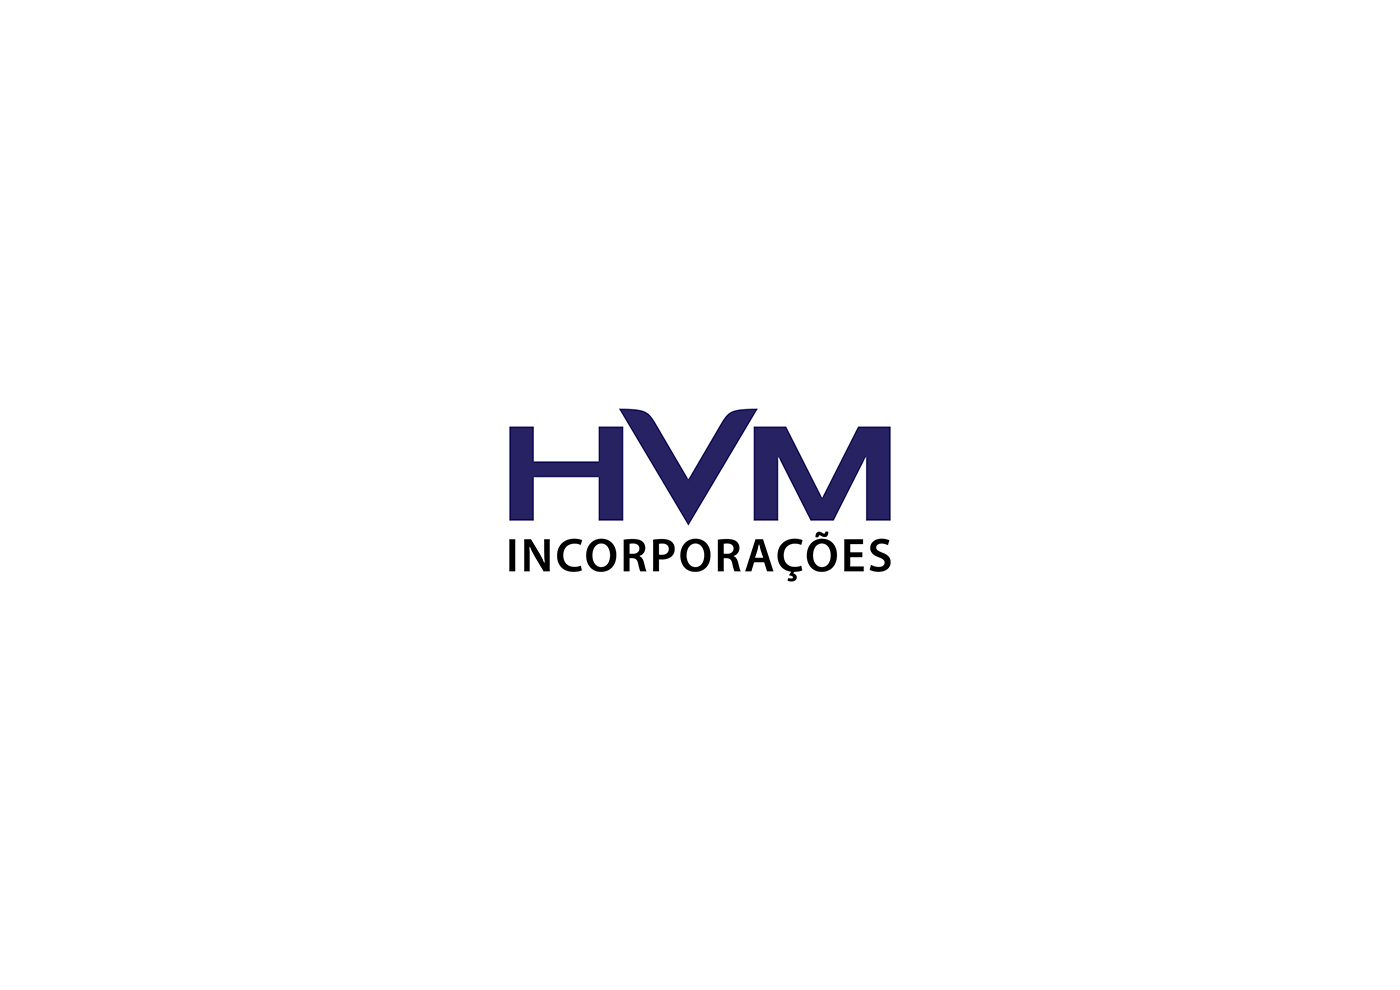 Professional Serious Real Estate Development Logo Design For Hvm